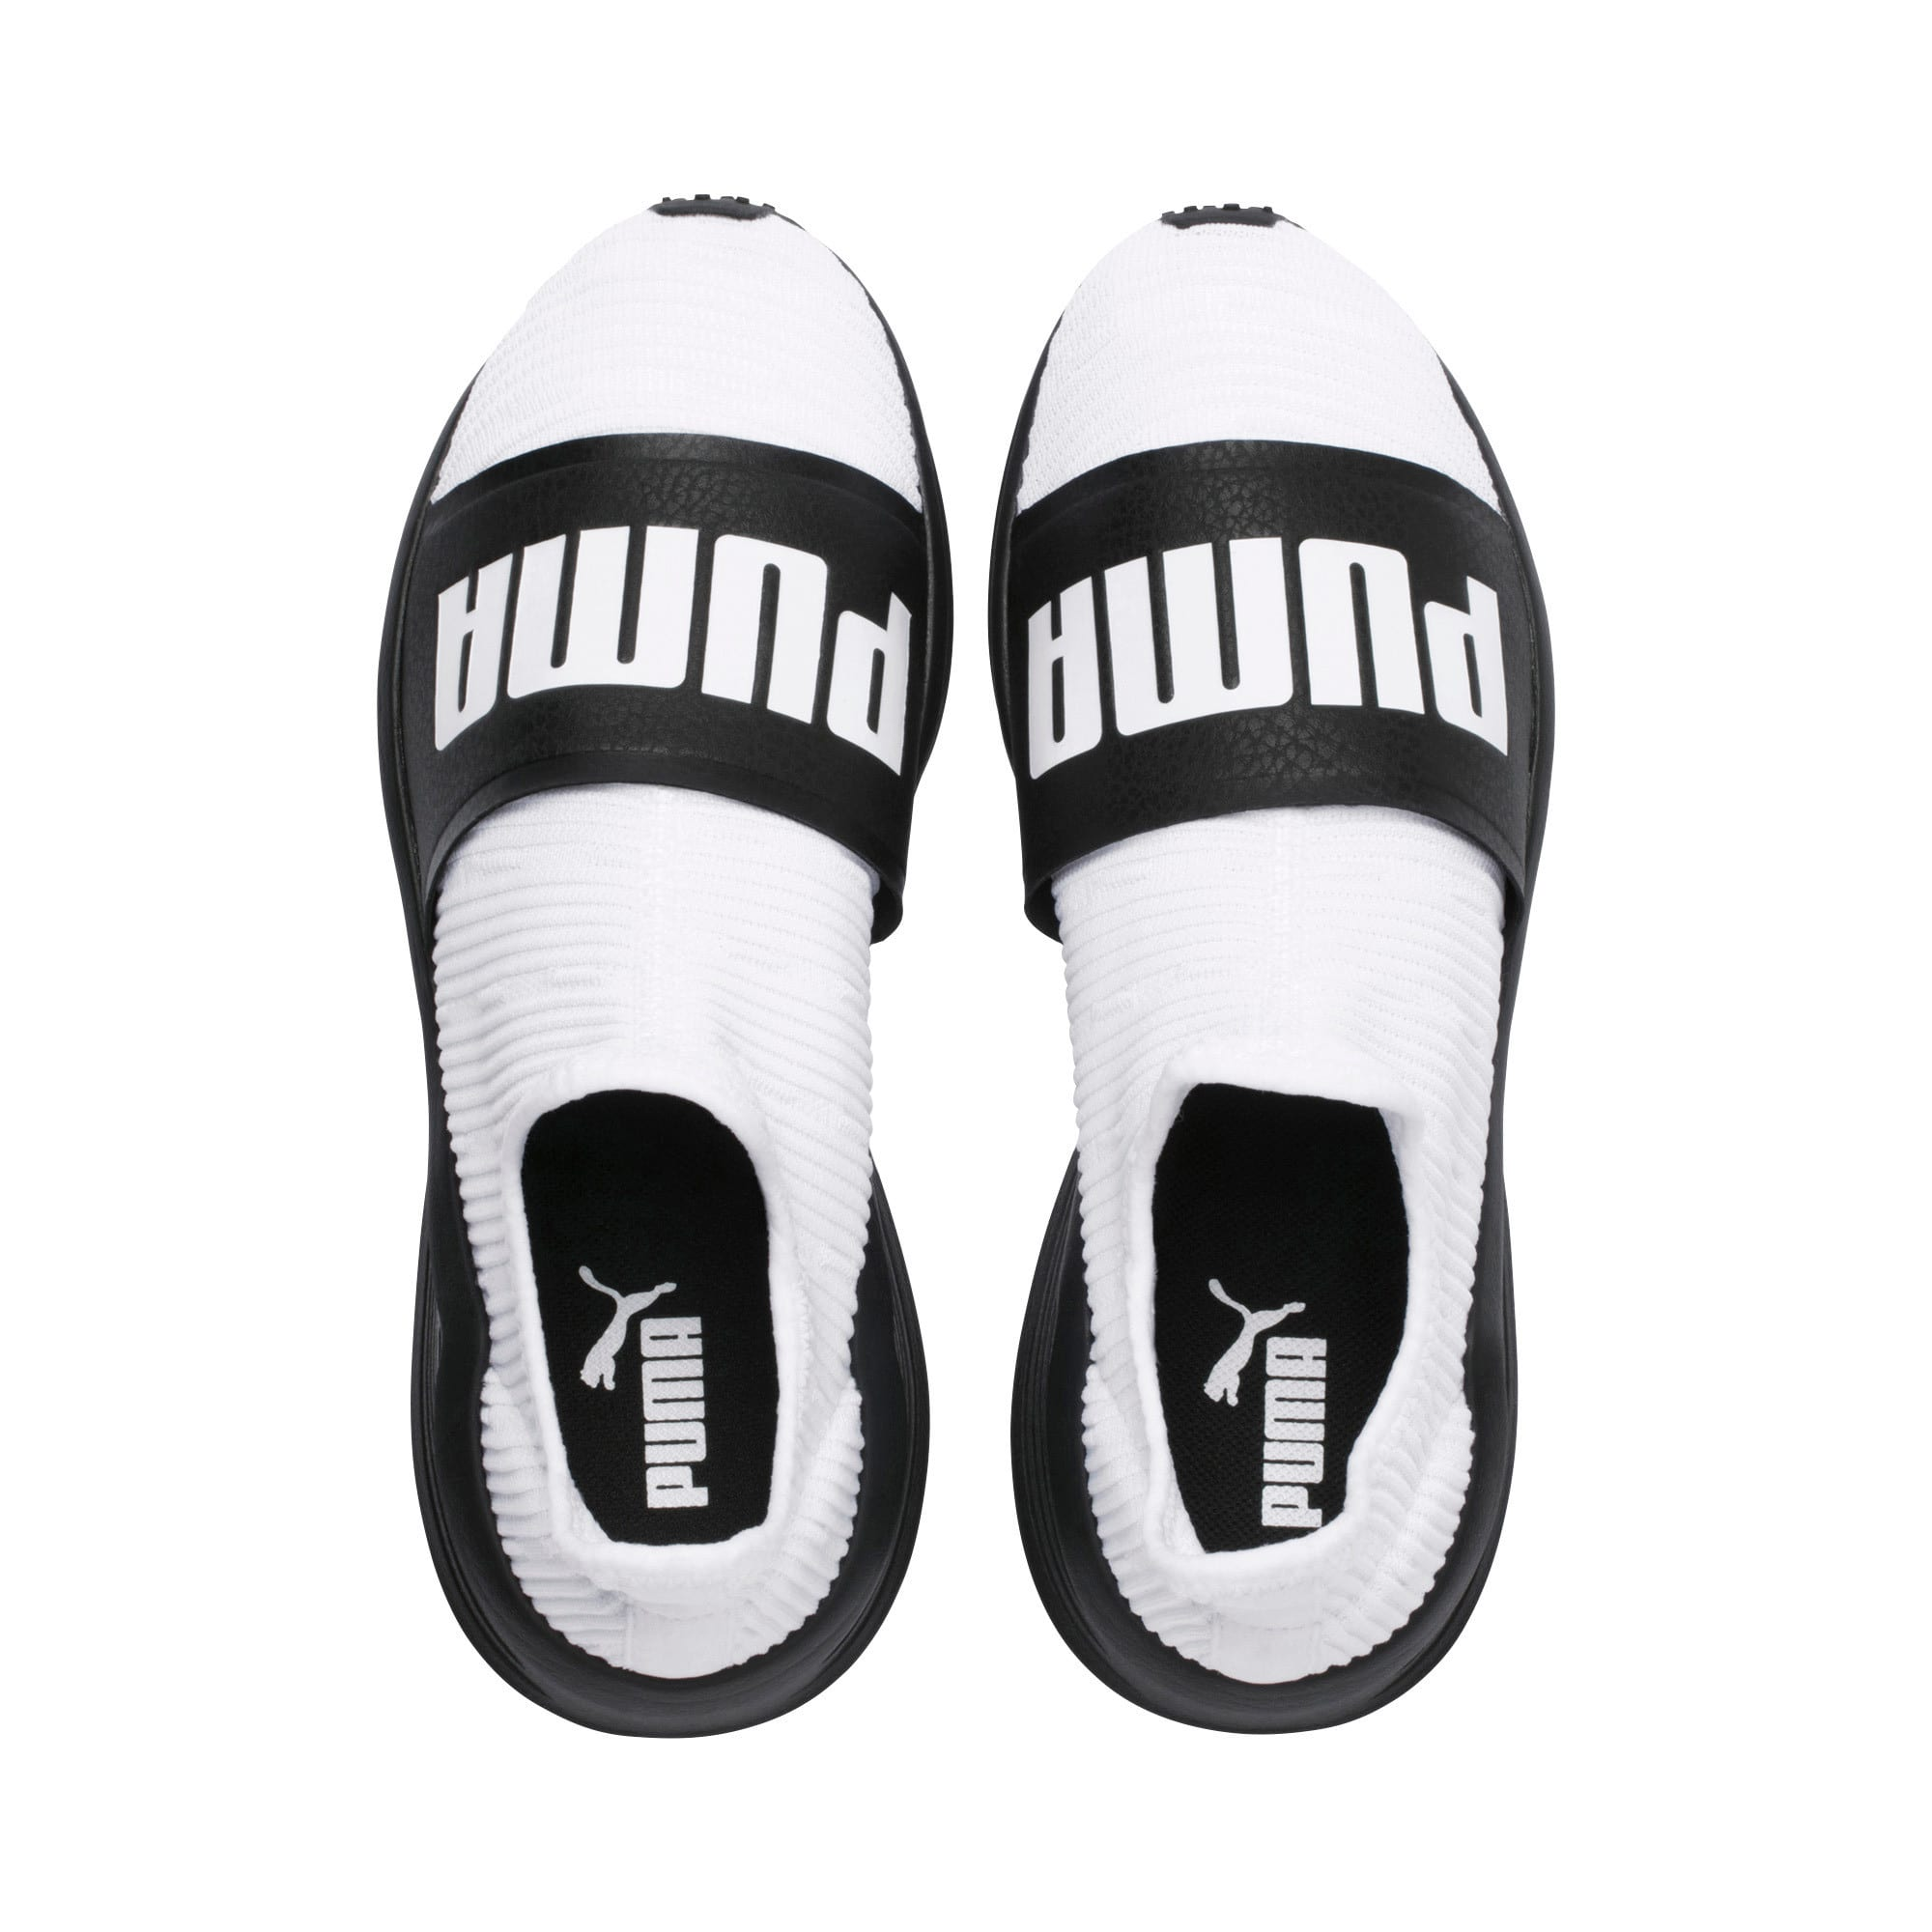 Thumbnail 6 of Fierce Slide Women's Trainers, Puma White-Puma Black, medium-IND